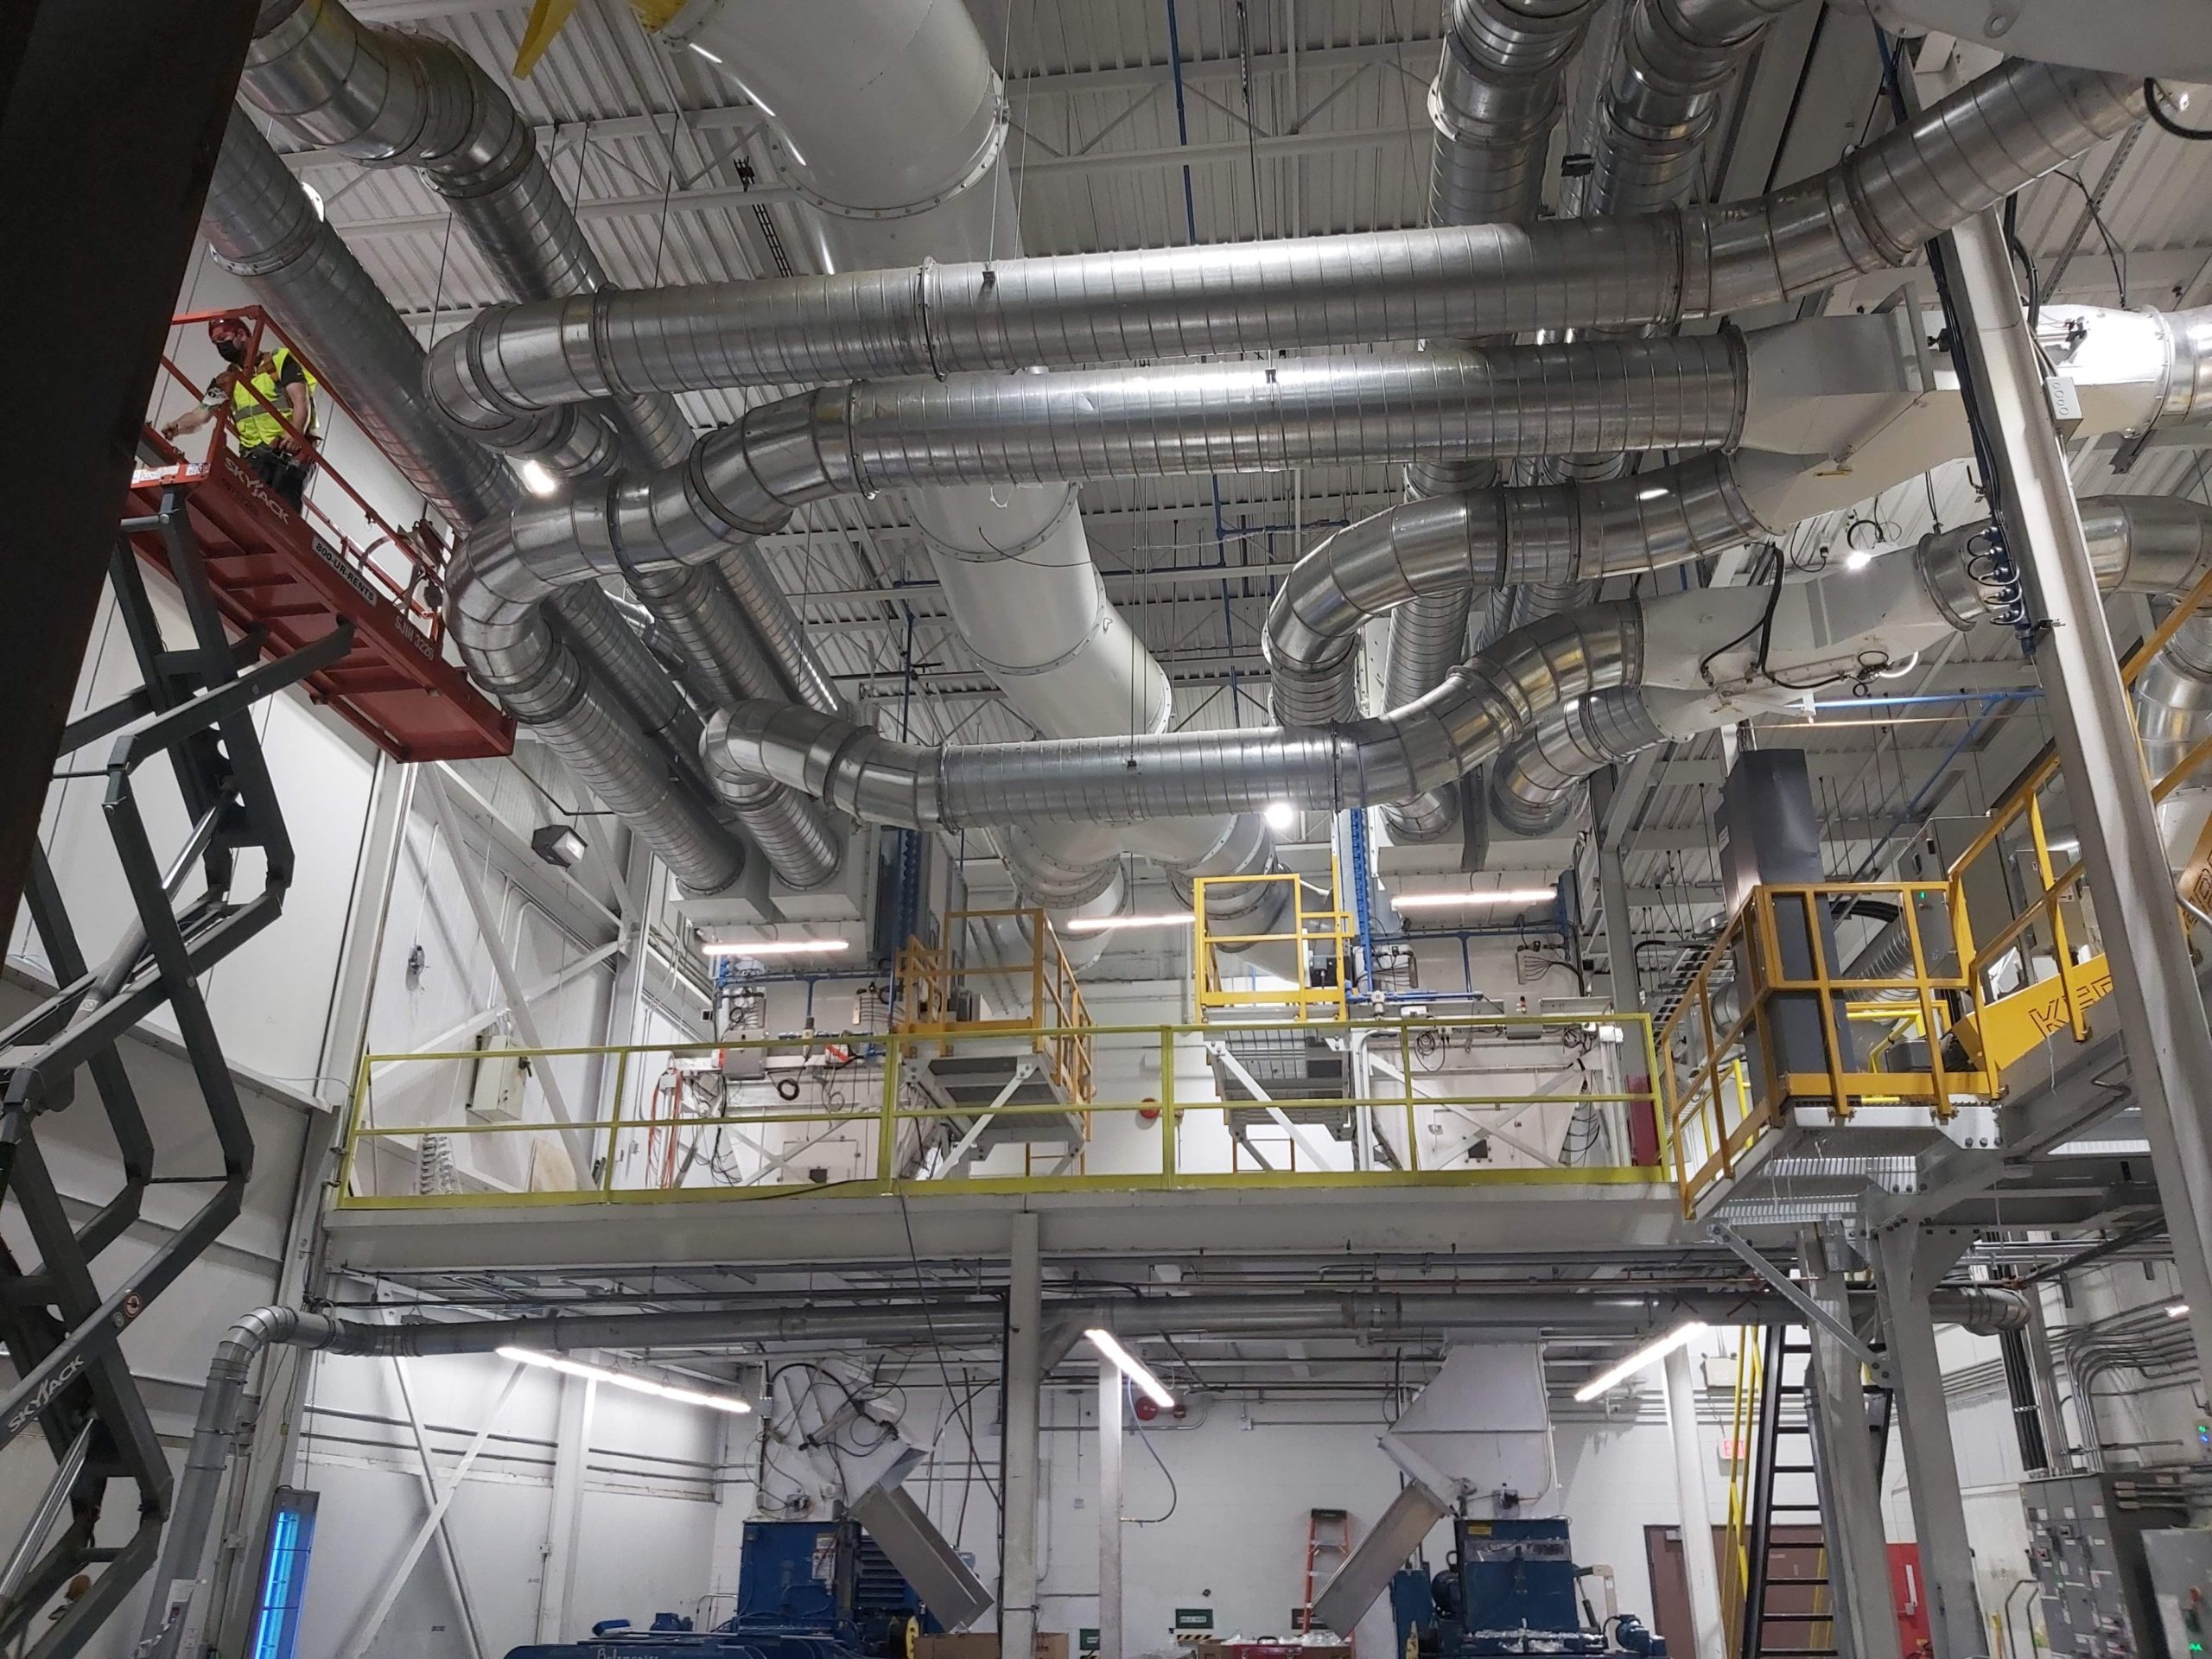 Ductwork inside a large building with a technician on a scissor lift adding more.